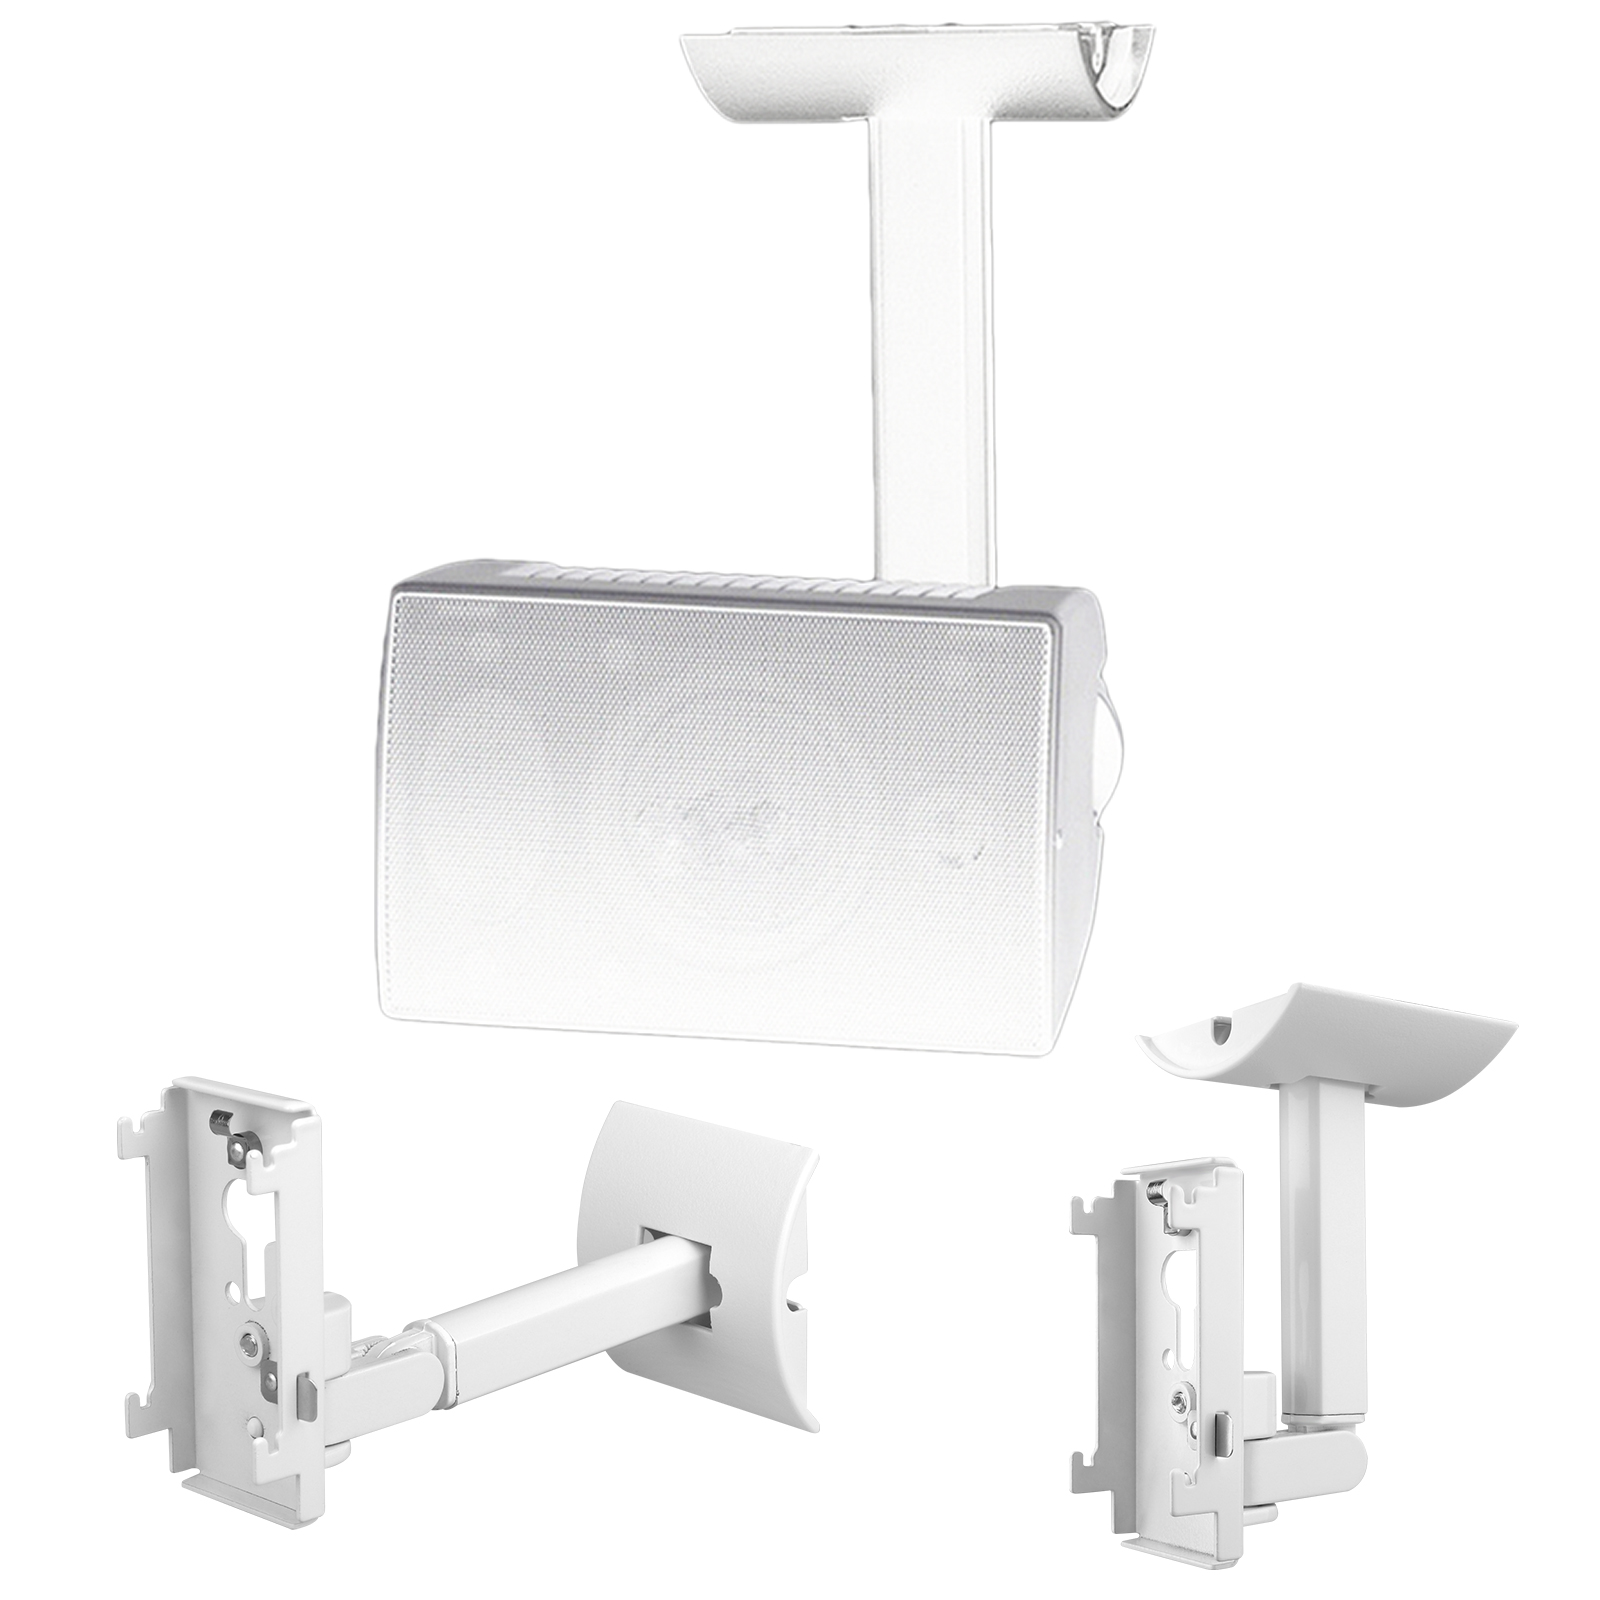 UB20-SERIES-2-II-Wall-Ceiling-Bracket-Mount-fits-for-Bose-all-Lifestyle-CineMate thumbnail 2